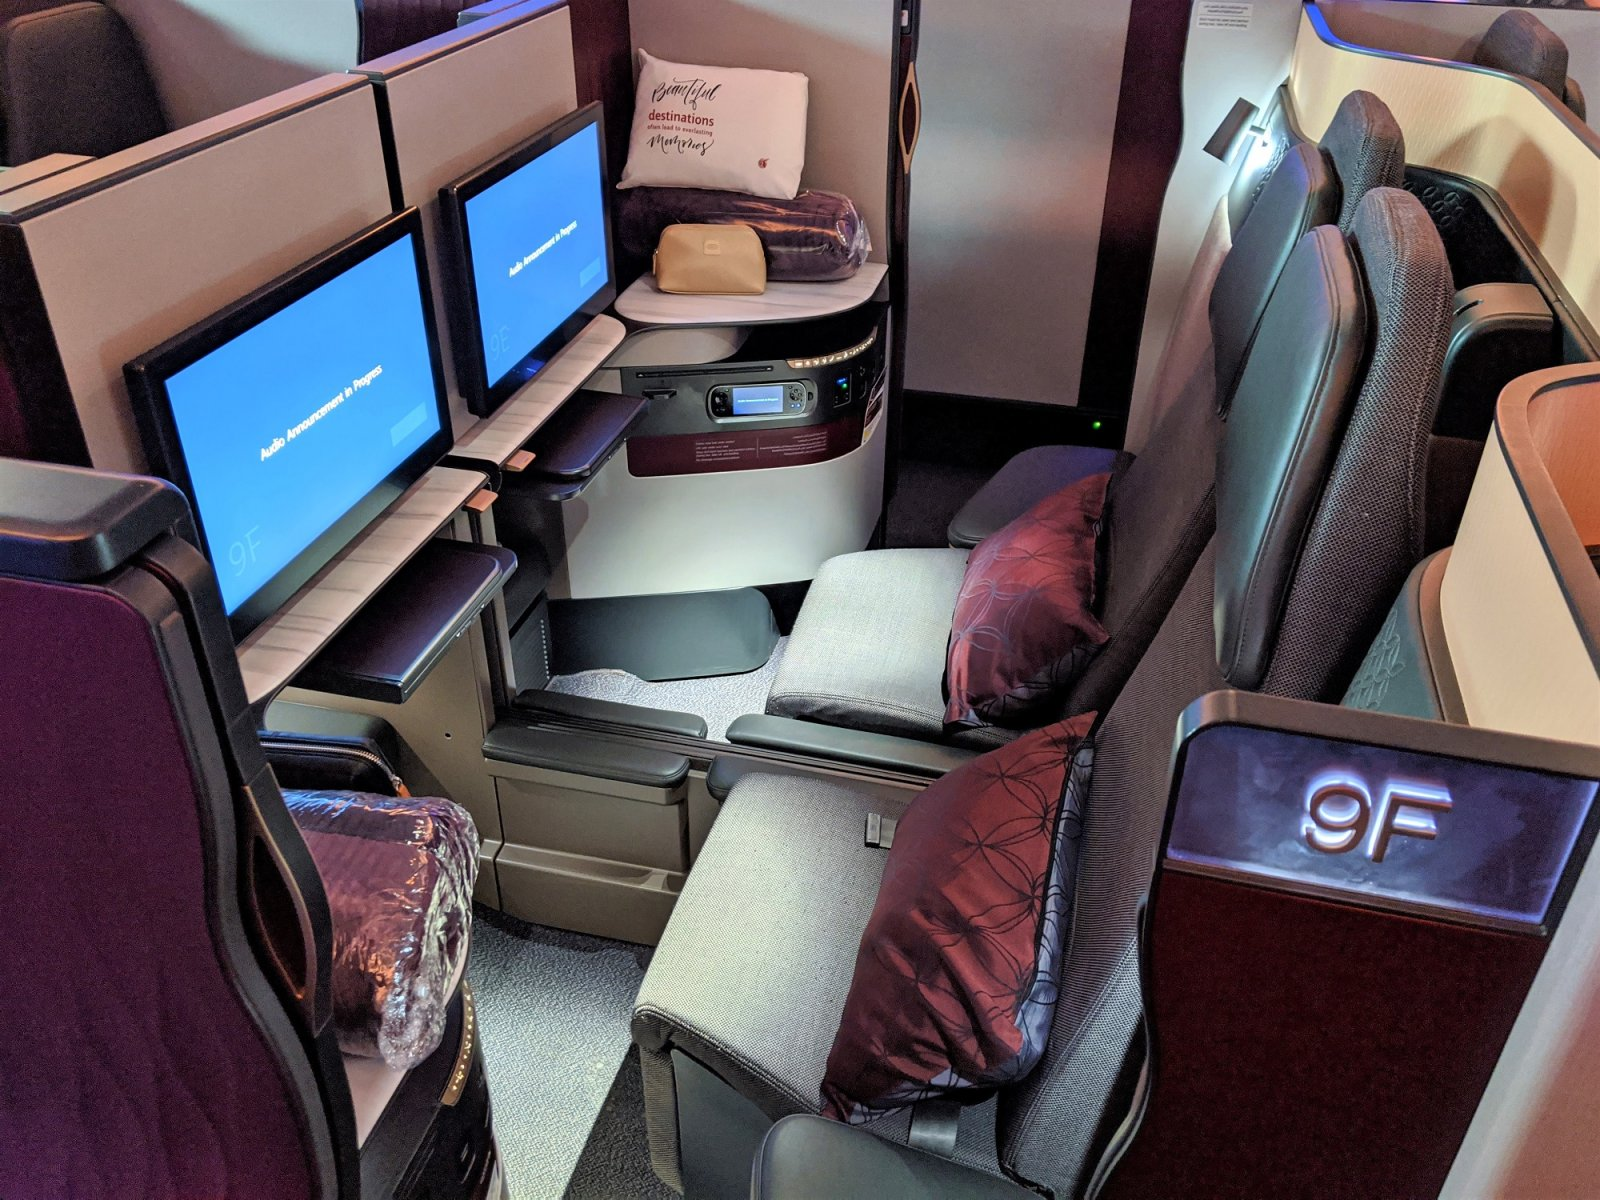 AA buy Miles Offers Can Save Money on Qatar Business class